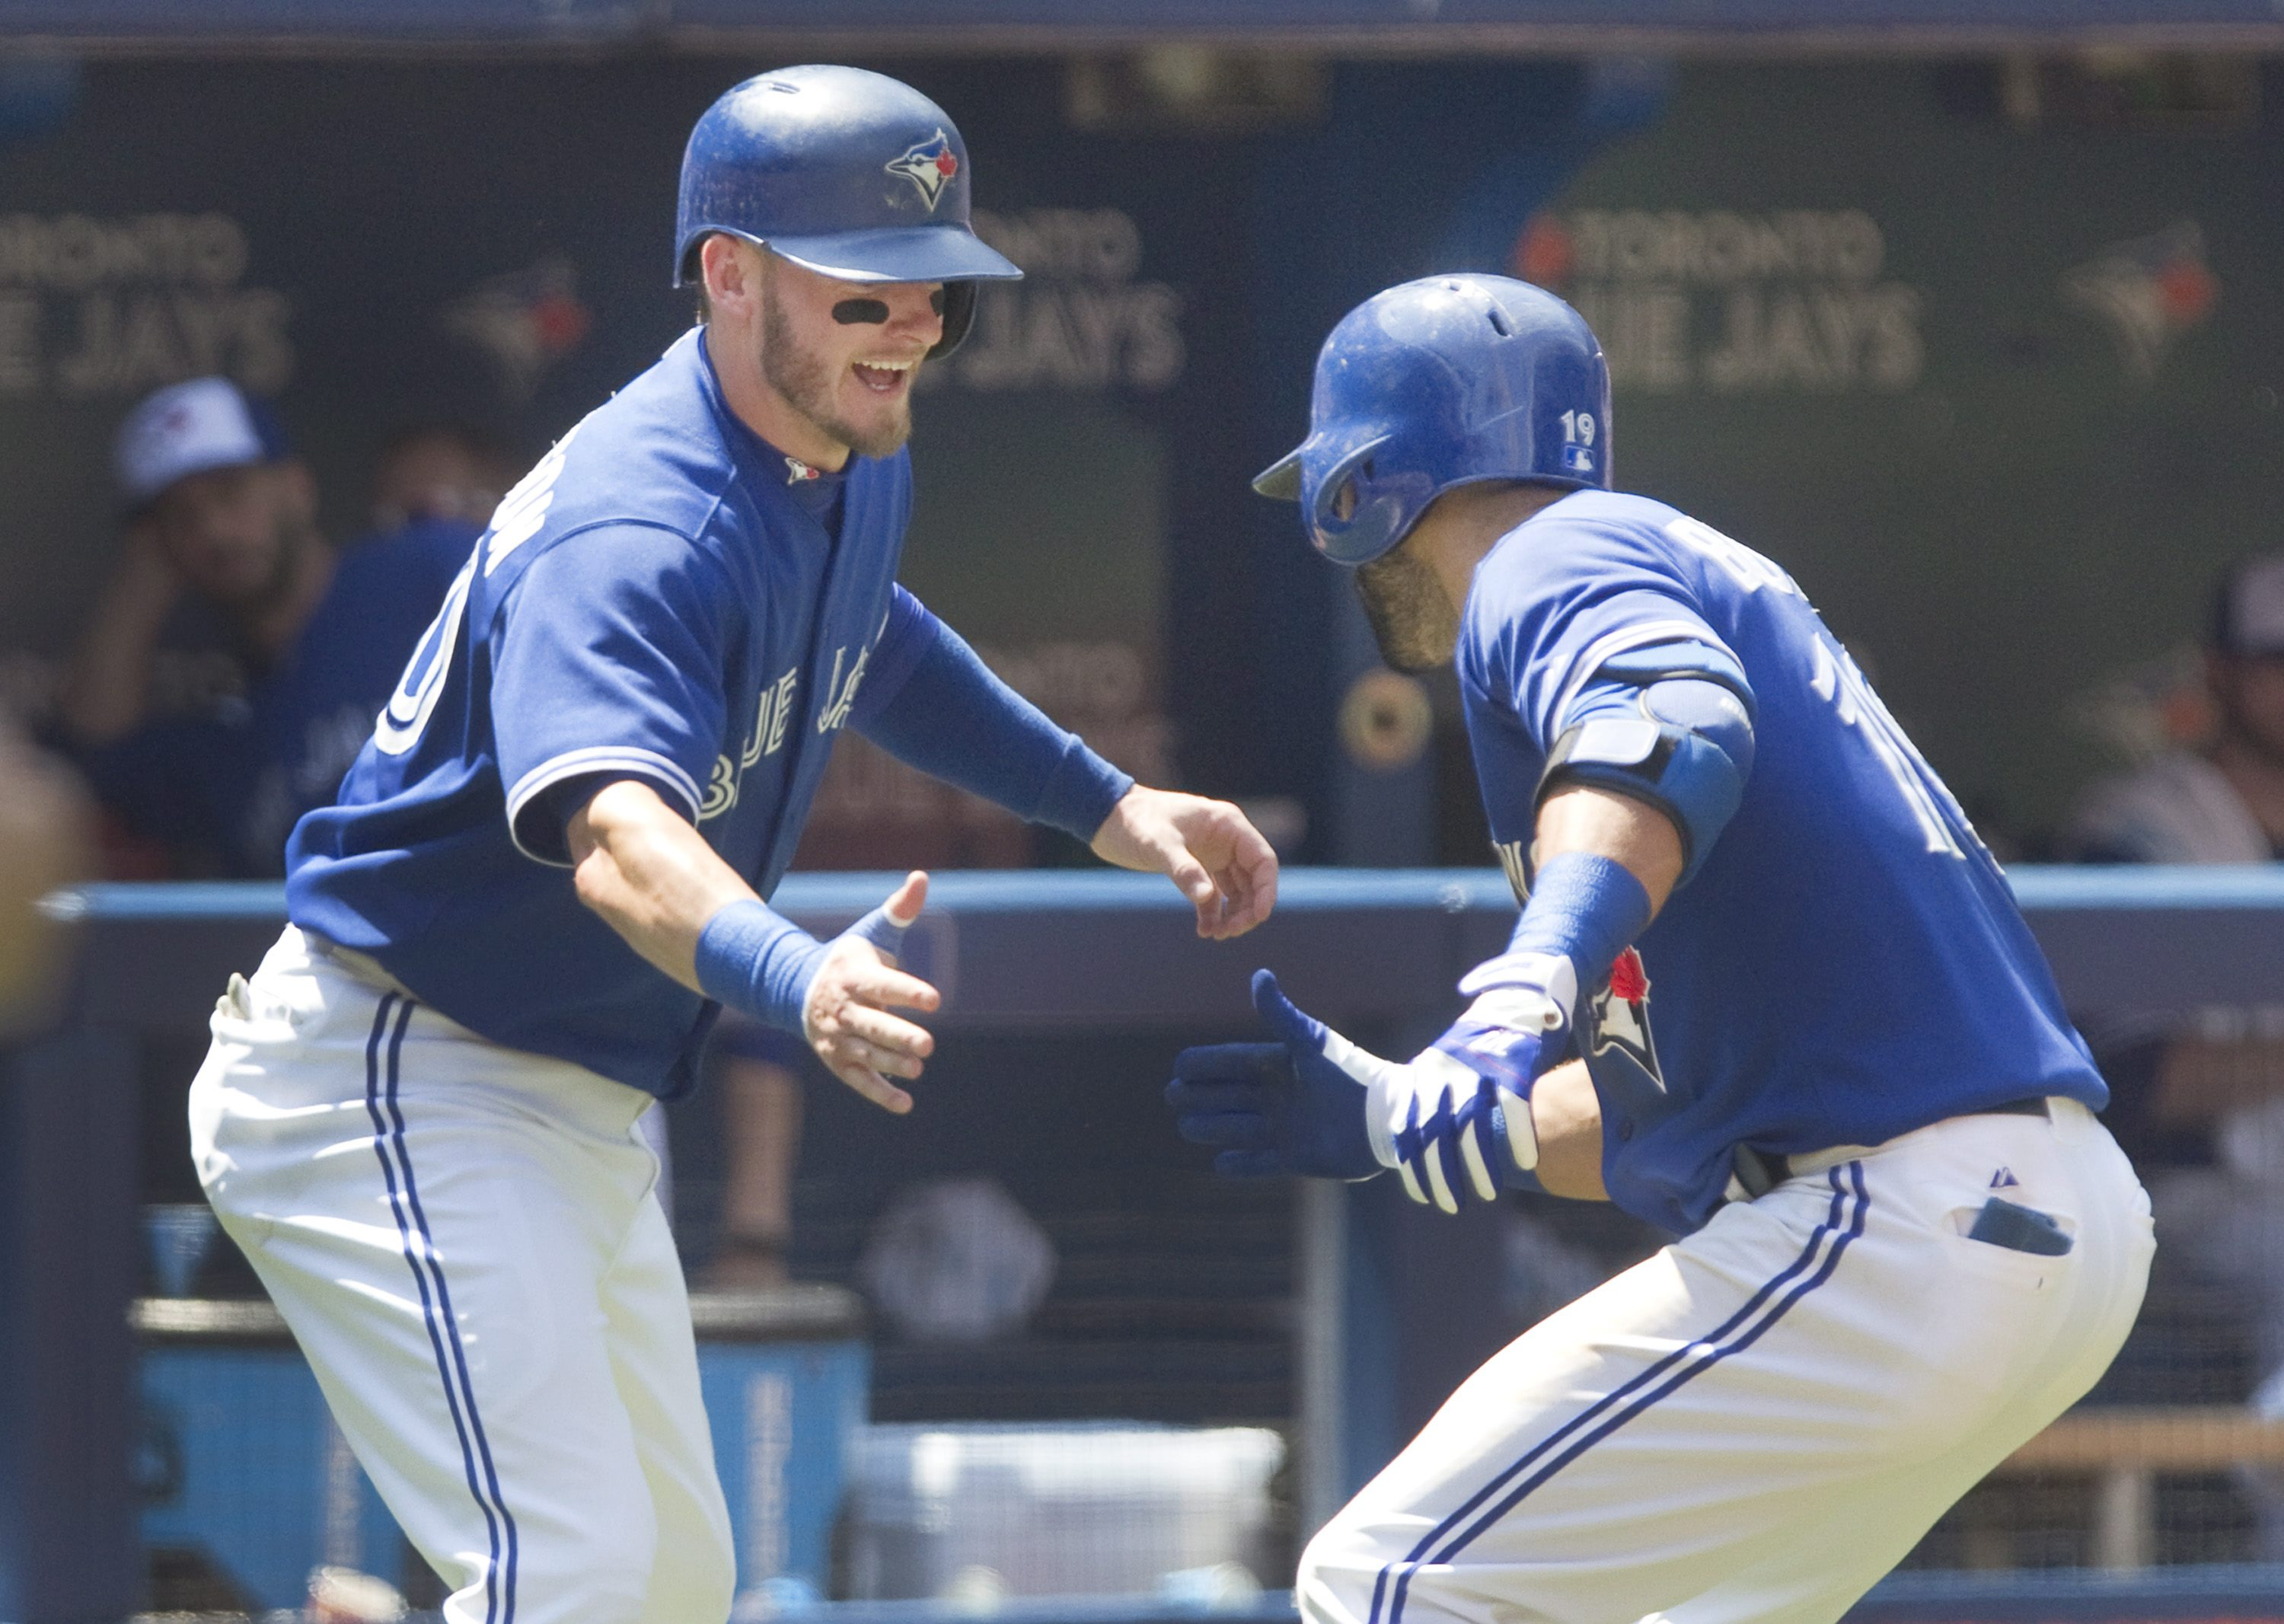 Toronto Blue Jays' Jose Bautista, right, is met by teammate Josh Donaldson after hitting two-run home run against the New York Yankees in the third inning of a baseball game in Toronto, Sunday, Aug. 16, 2015. (Fred Thornhill/The Canadian Press via AP) MAN